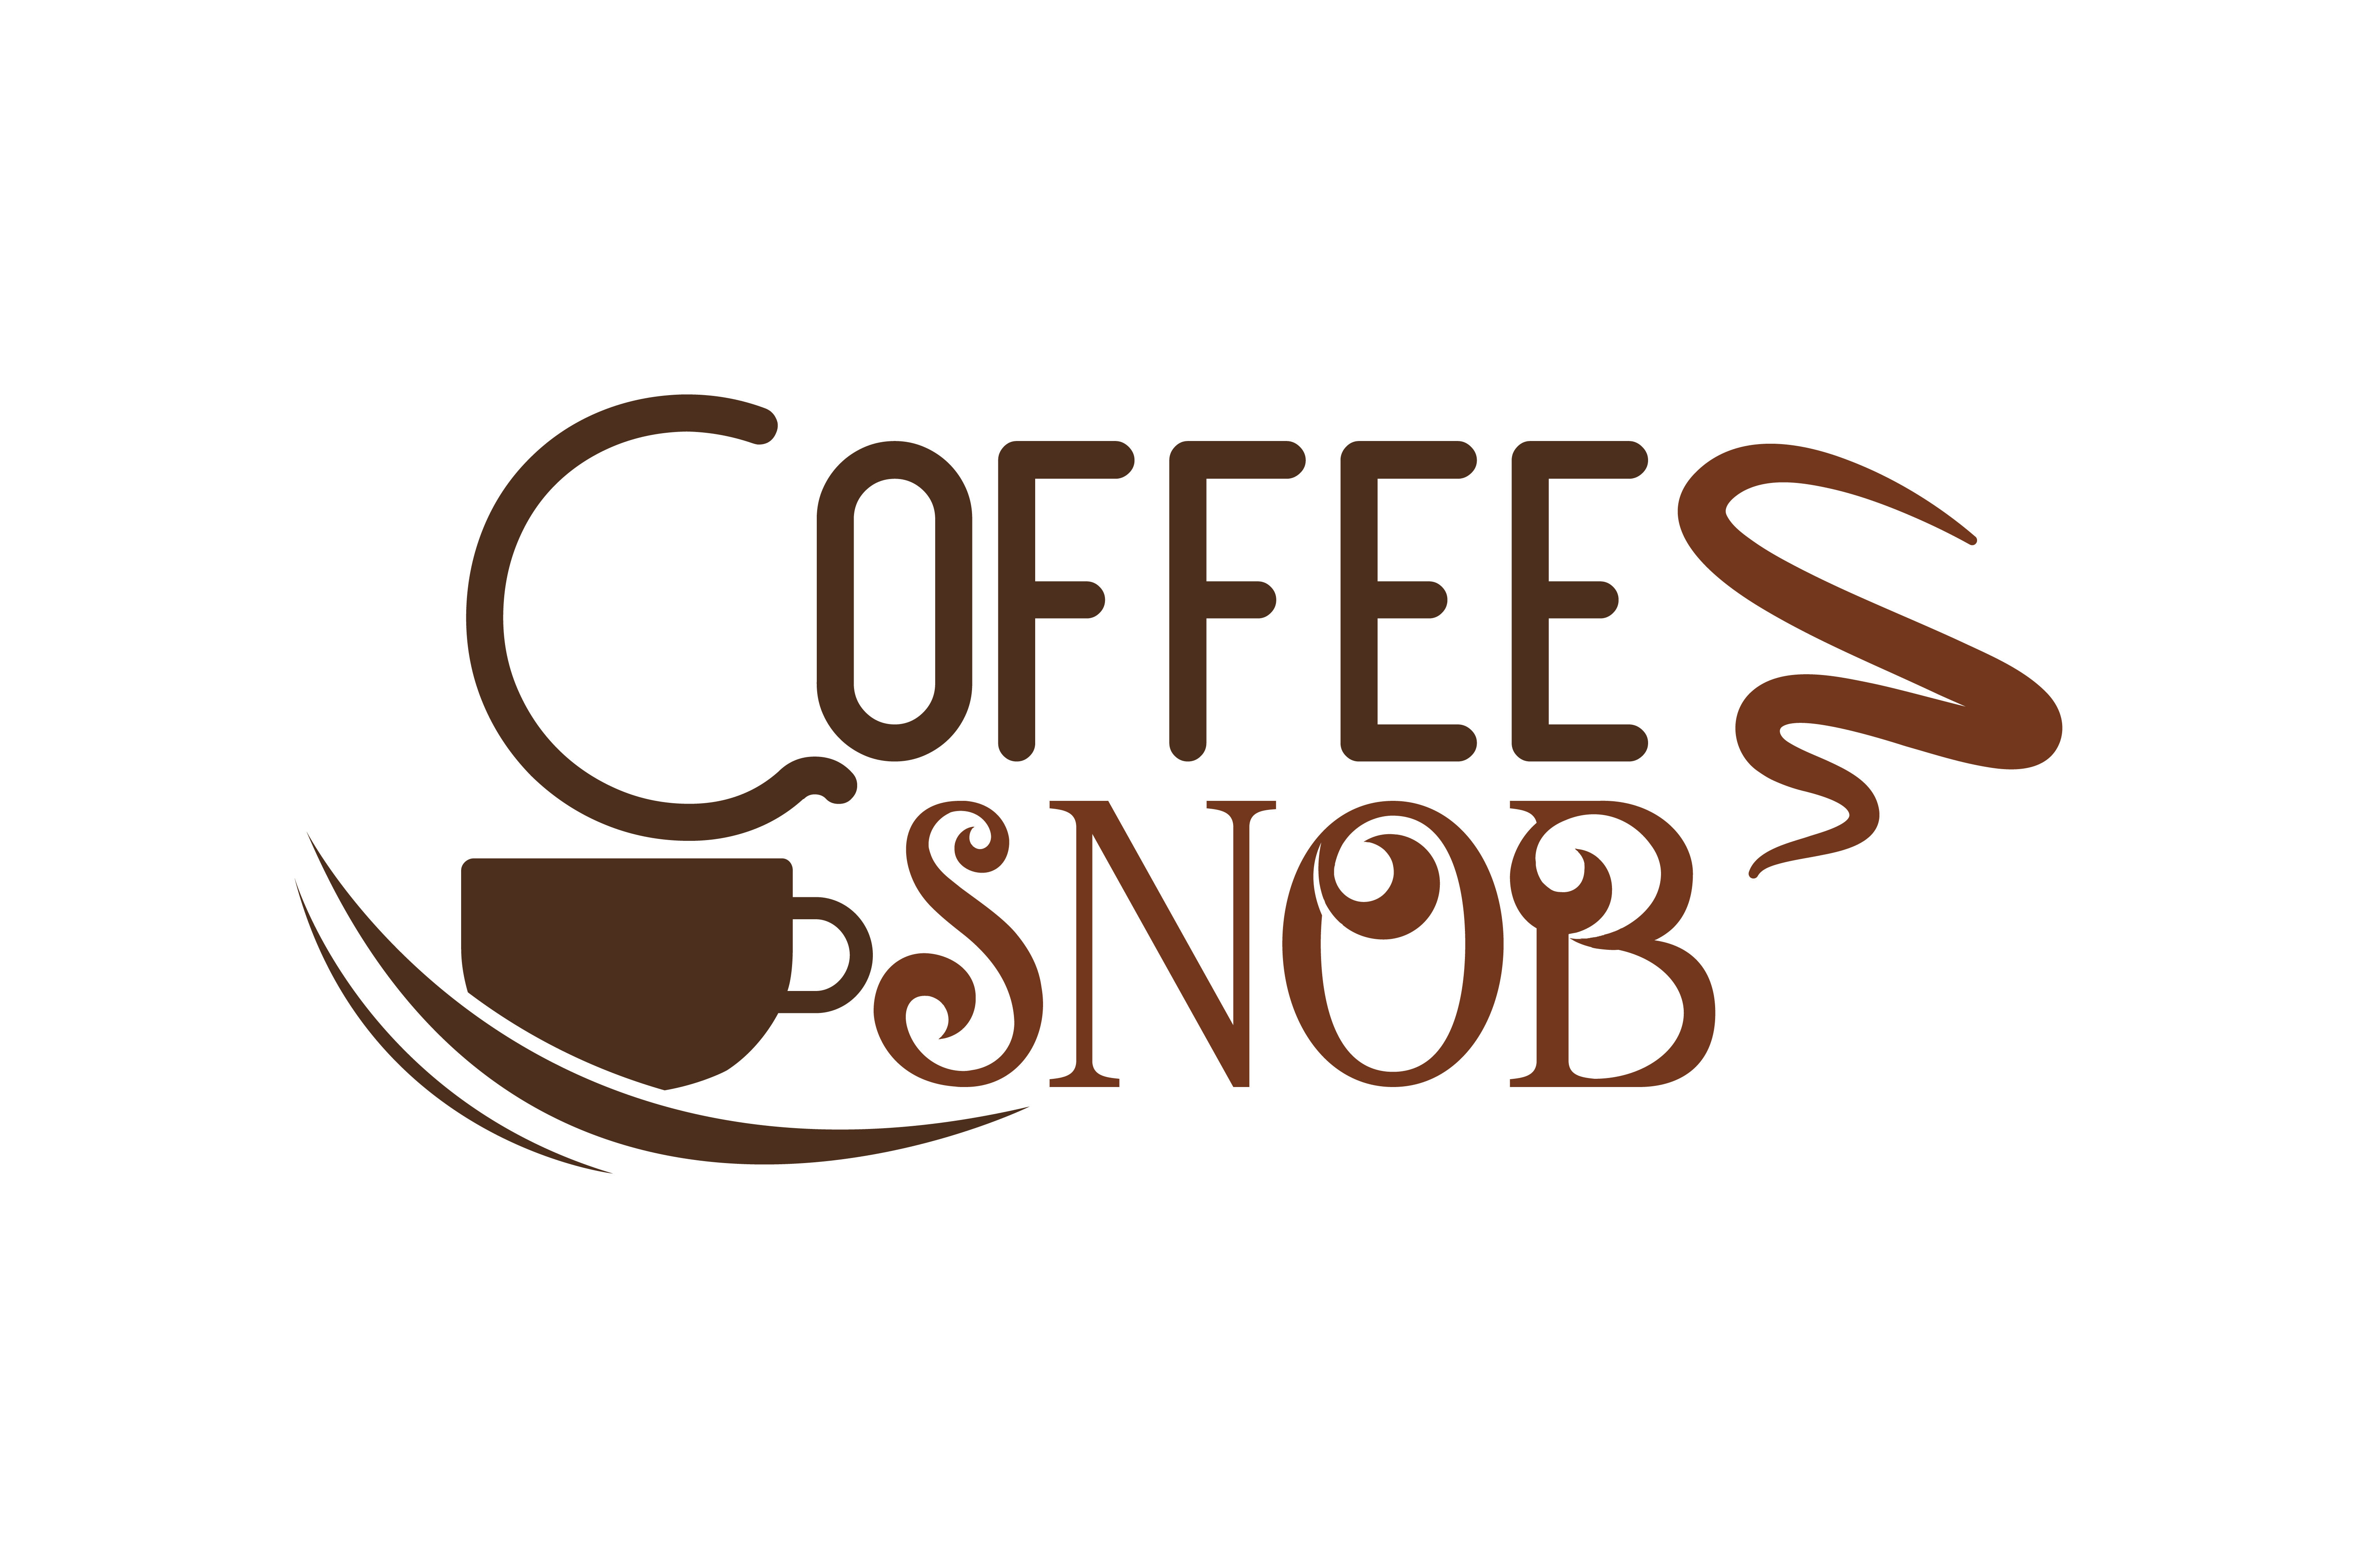 Download Free Coffee Snob Quote Svg Cut Graphic By Thelucky Creative Fabrica for Cricut Explore, Silhouette and other cutting machines.